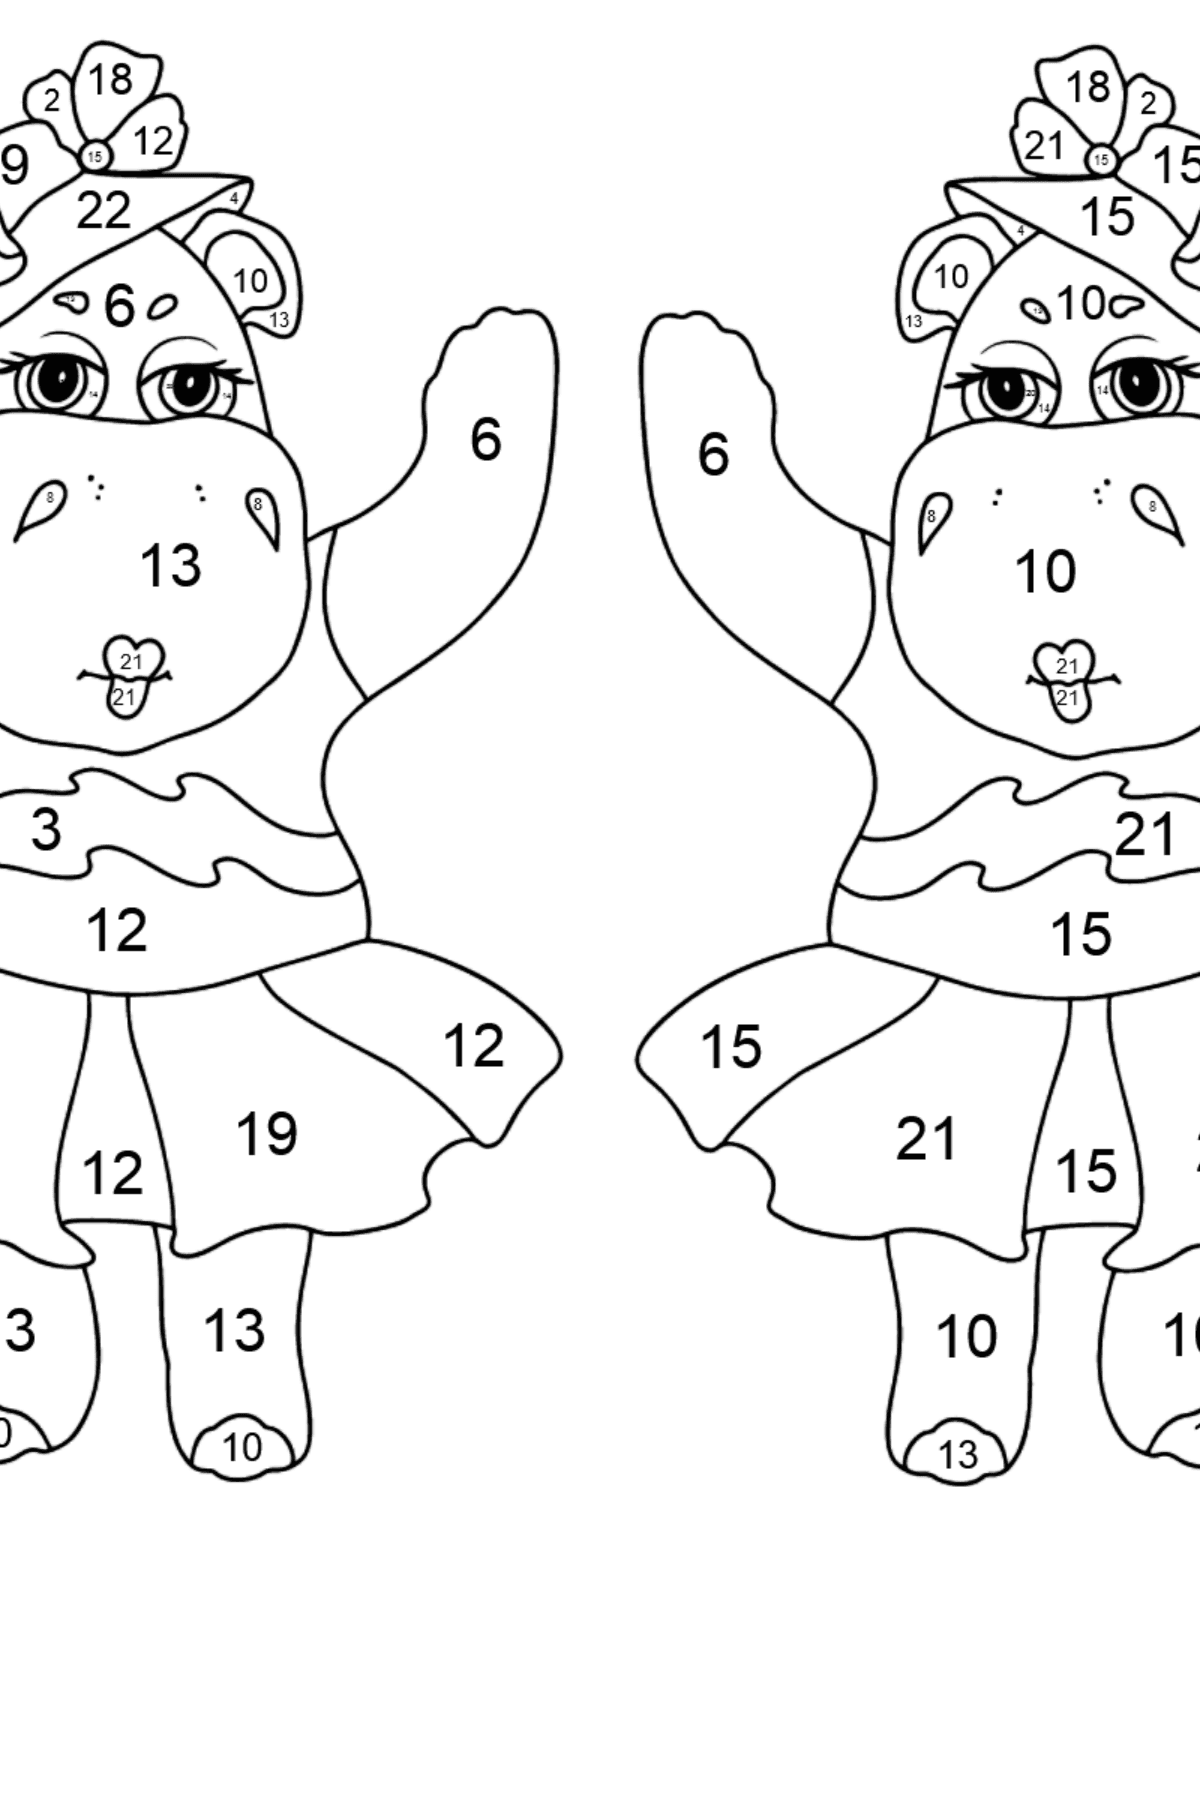 Coloring Page - Hippos are Harvesting the Crops - Coloring by Numbers for Kids